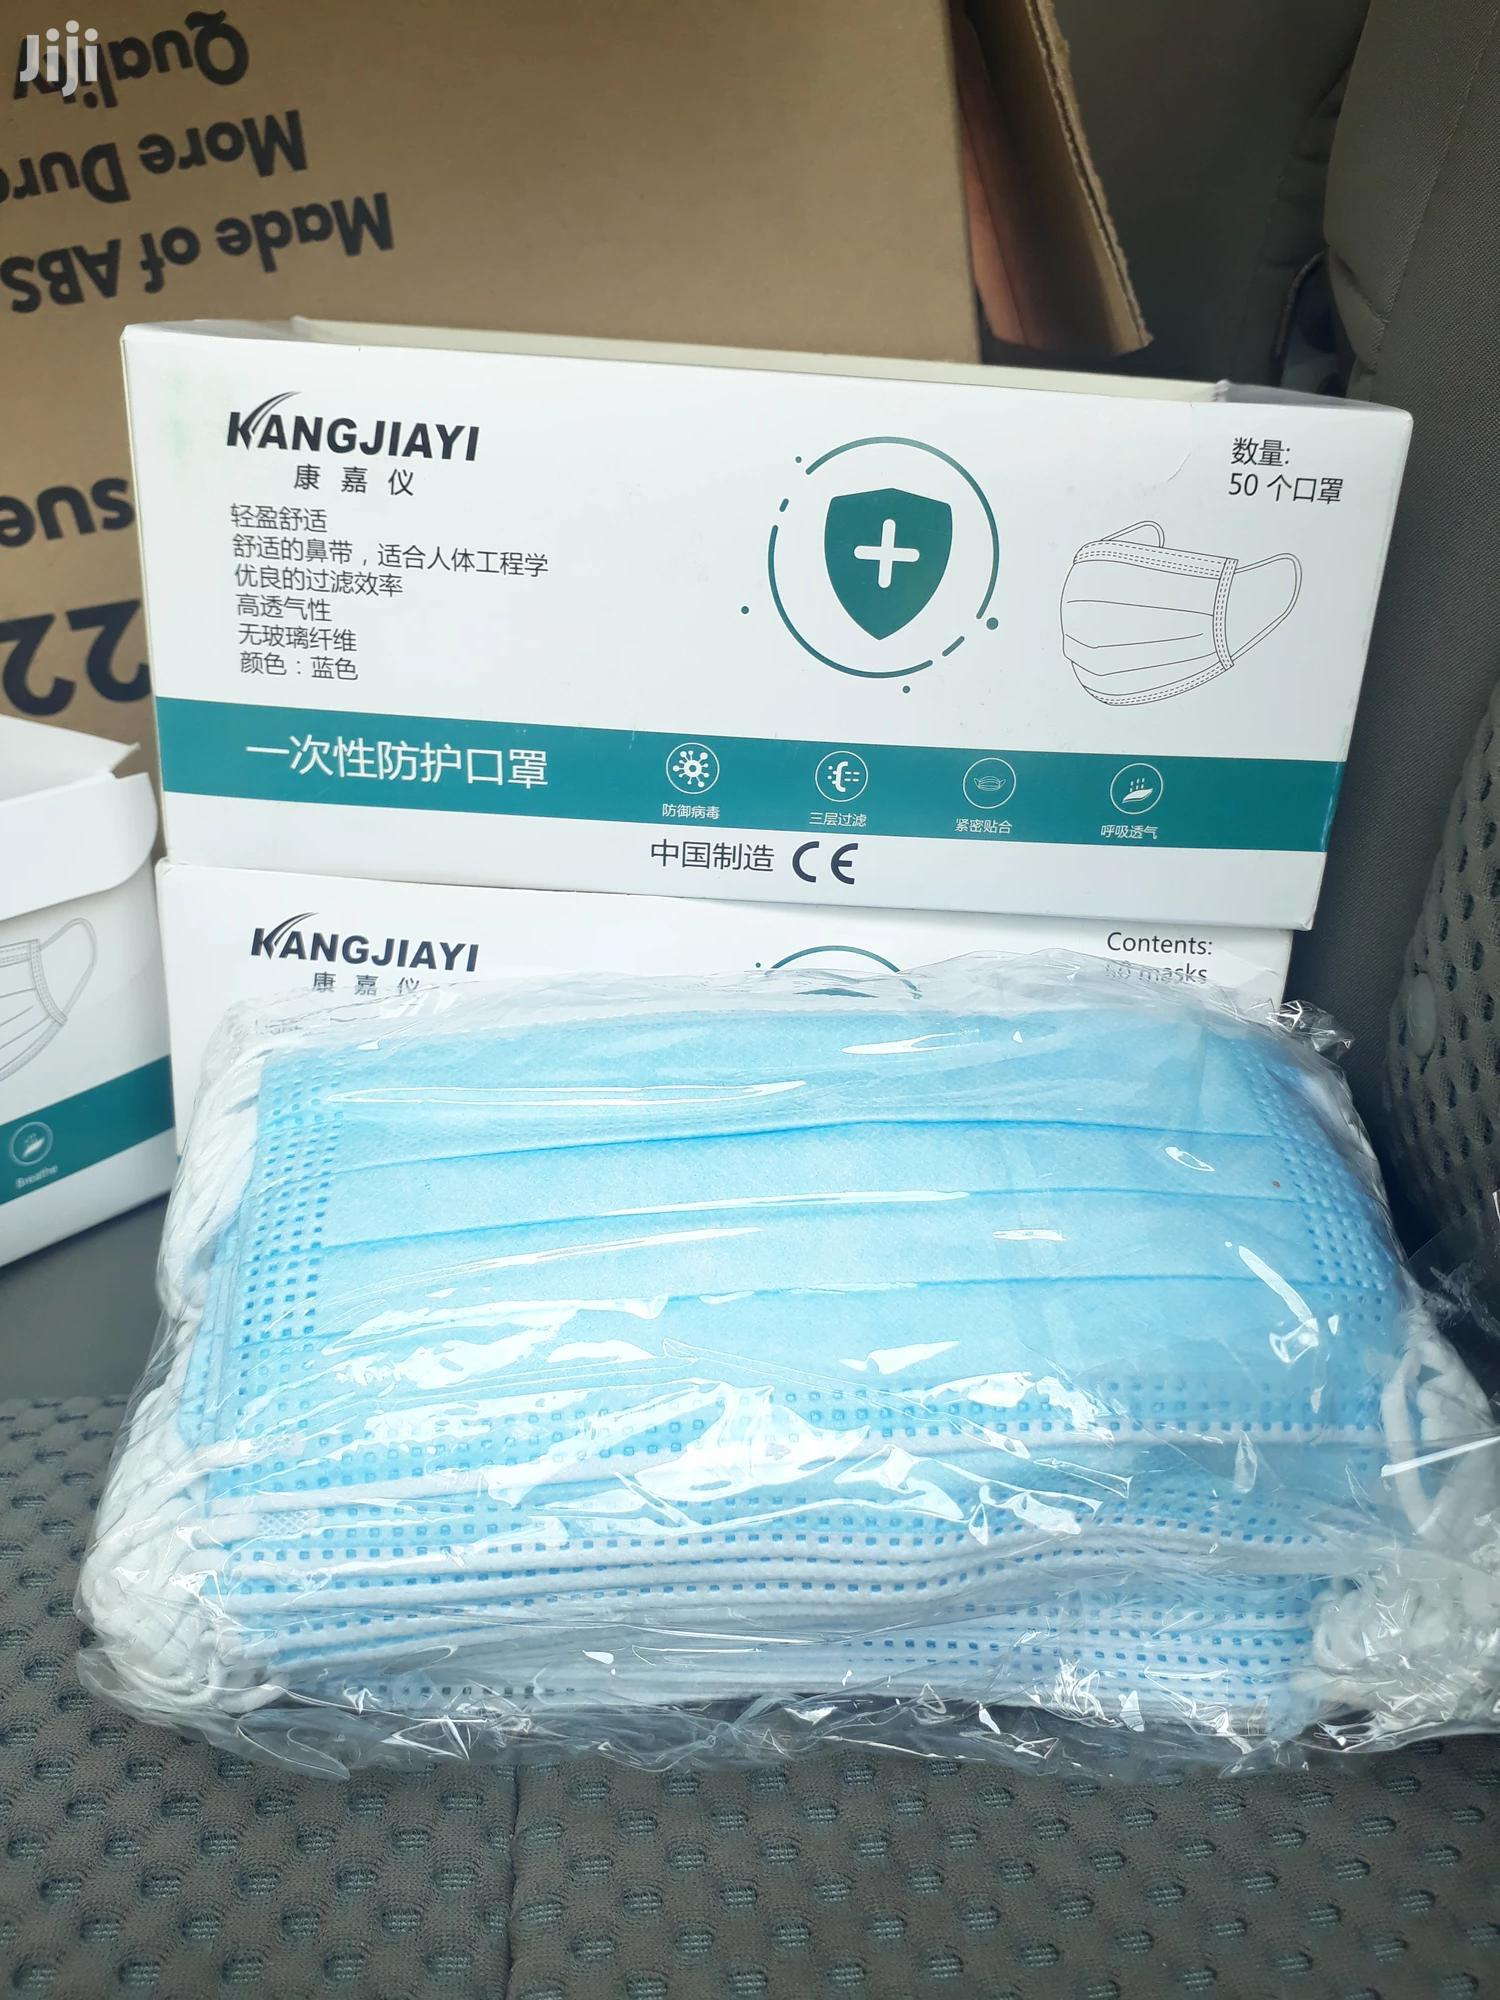 Surgical Face Mask | Medical Equipment for sale in East Legon, Greater Accra, Ghana